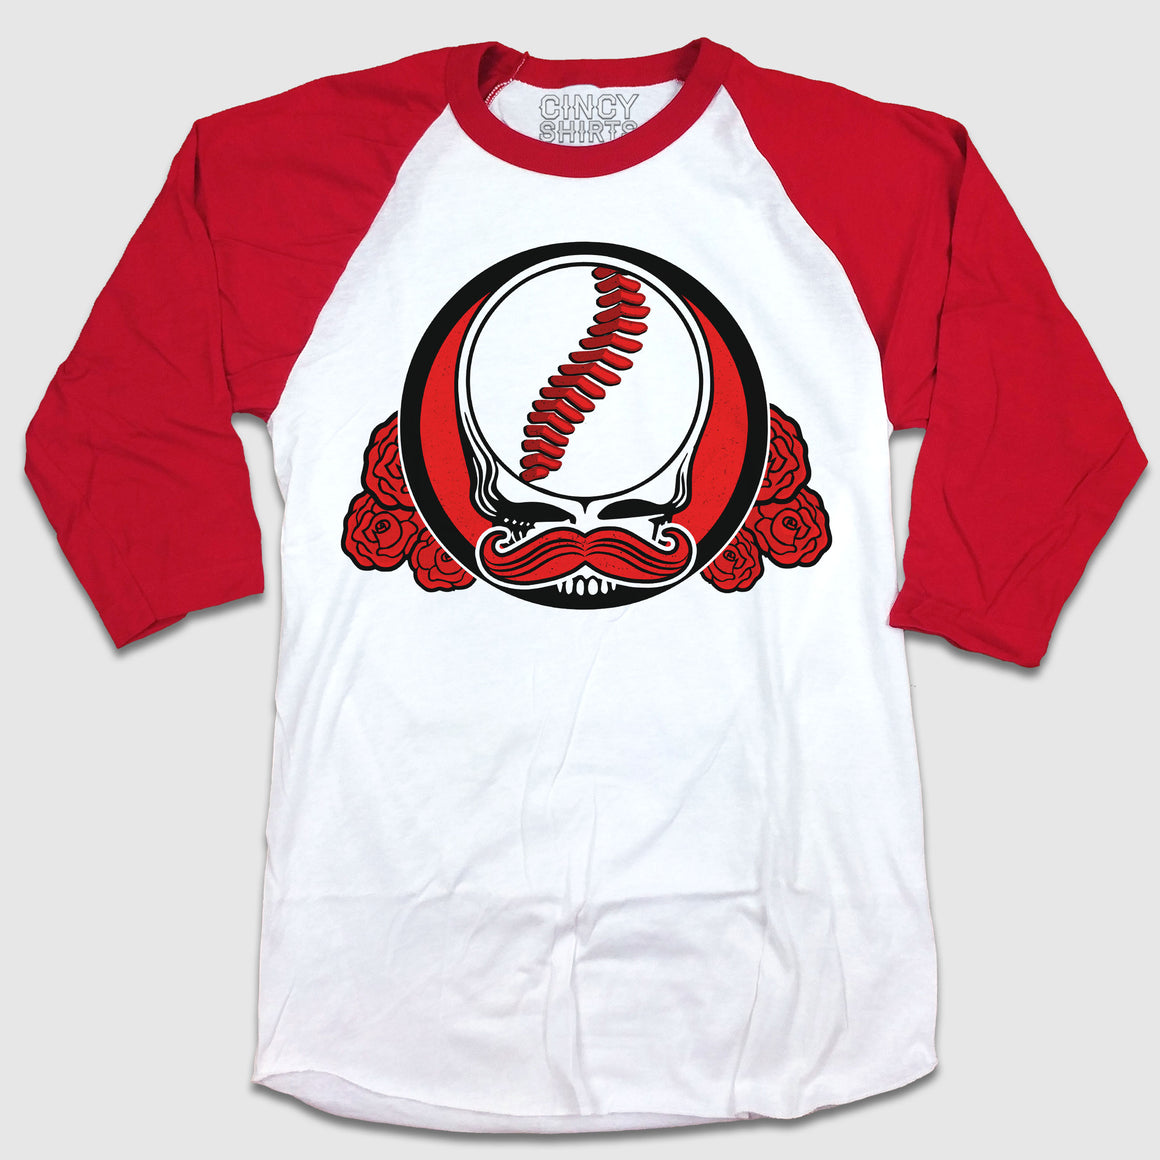 Mr. Dead Red - Grateful Dead Cincy Baseball - Cincy Shirts